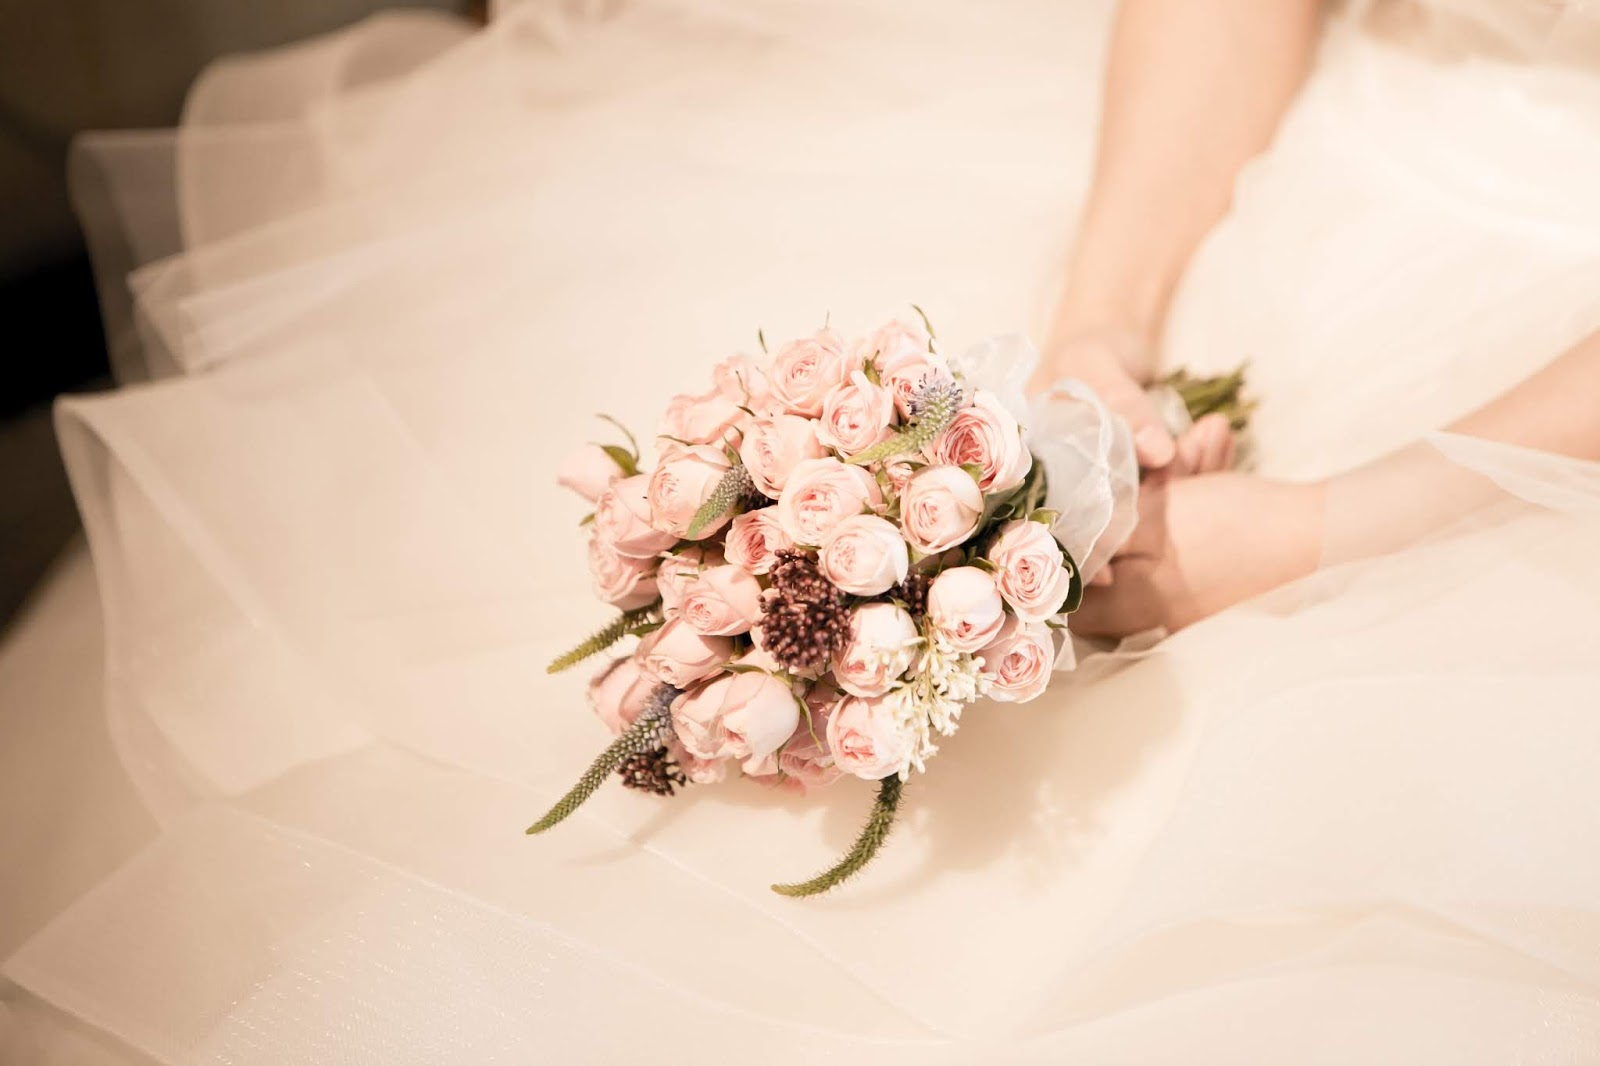 Wedding traditions that you don't need to stick to